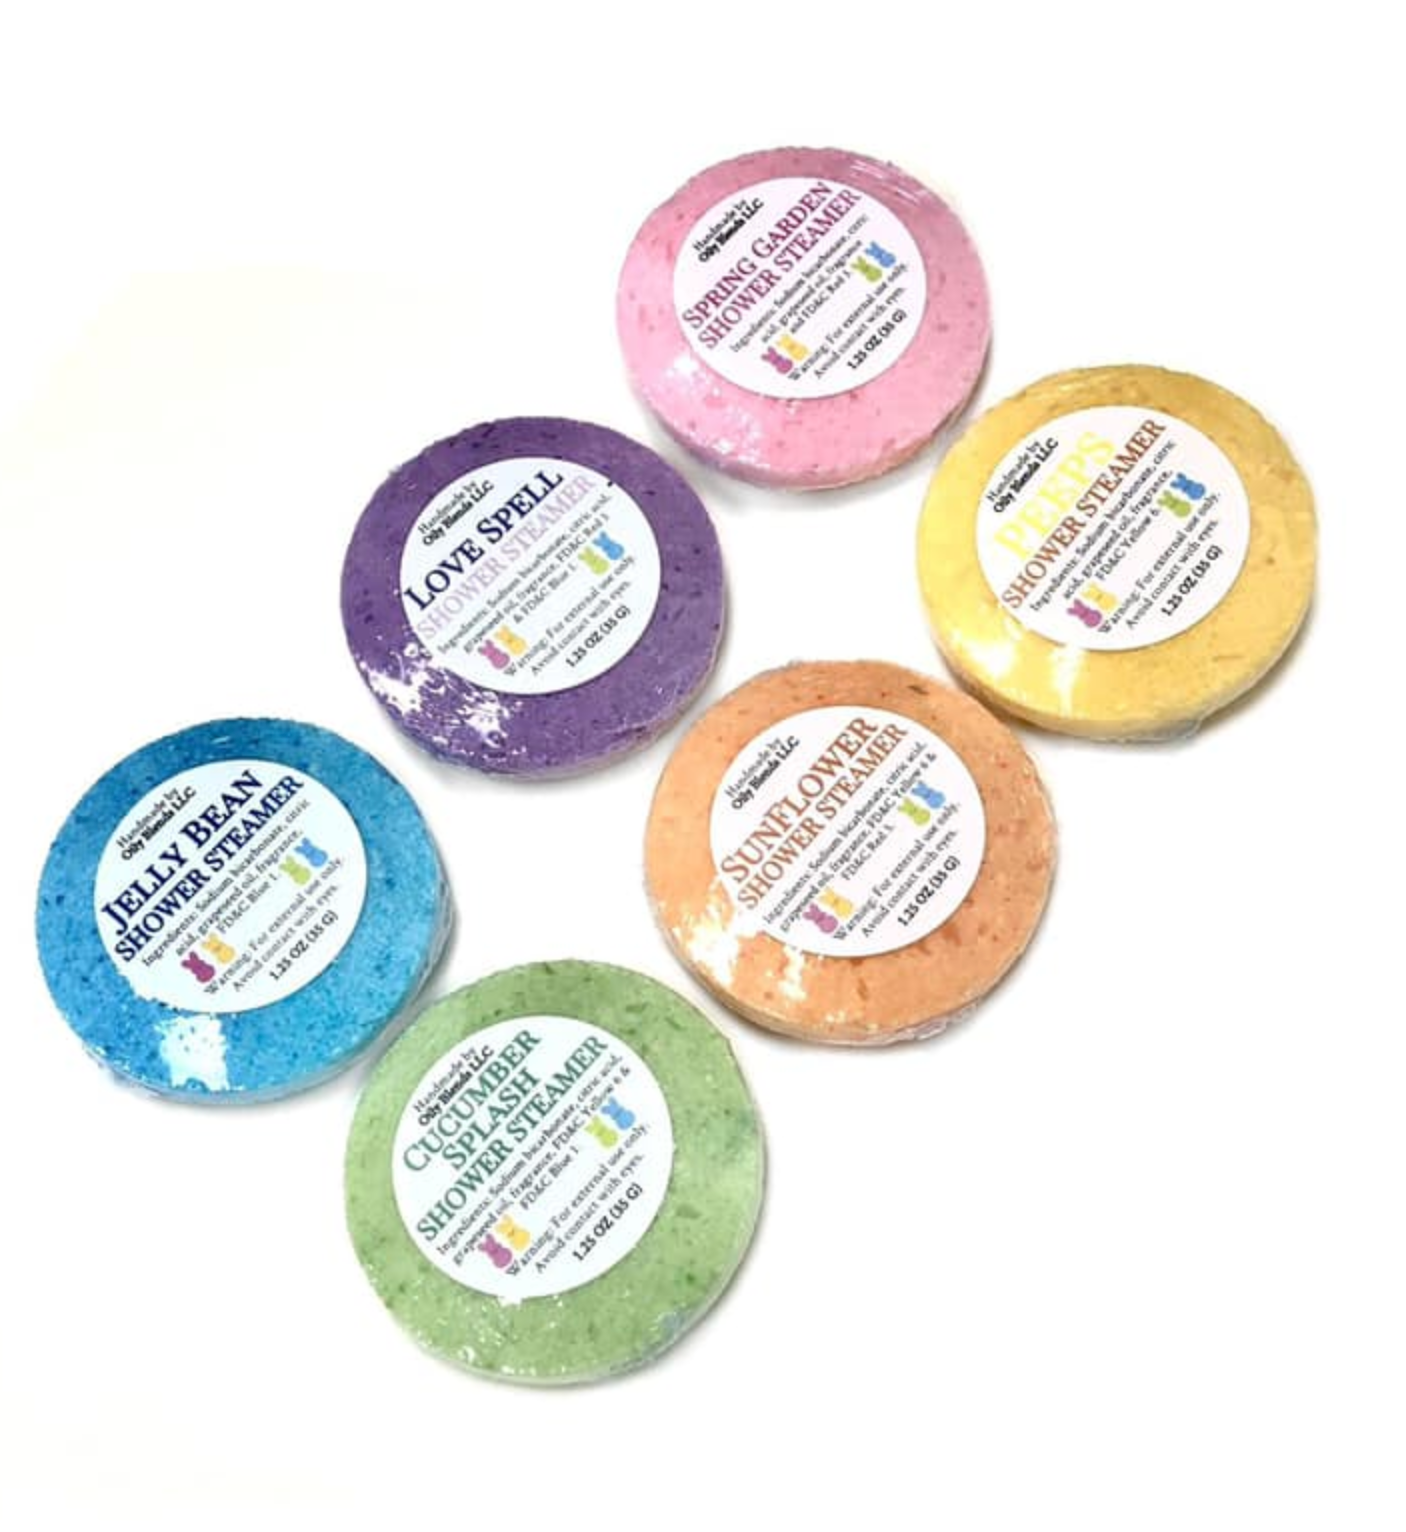 Oily Blends Shower Steamers